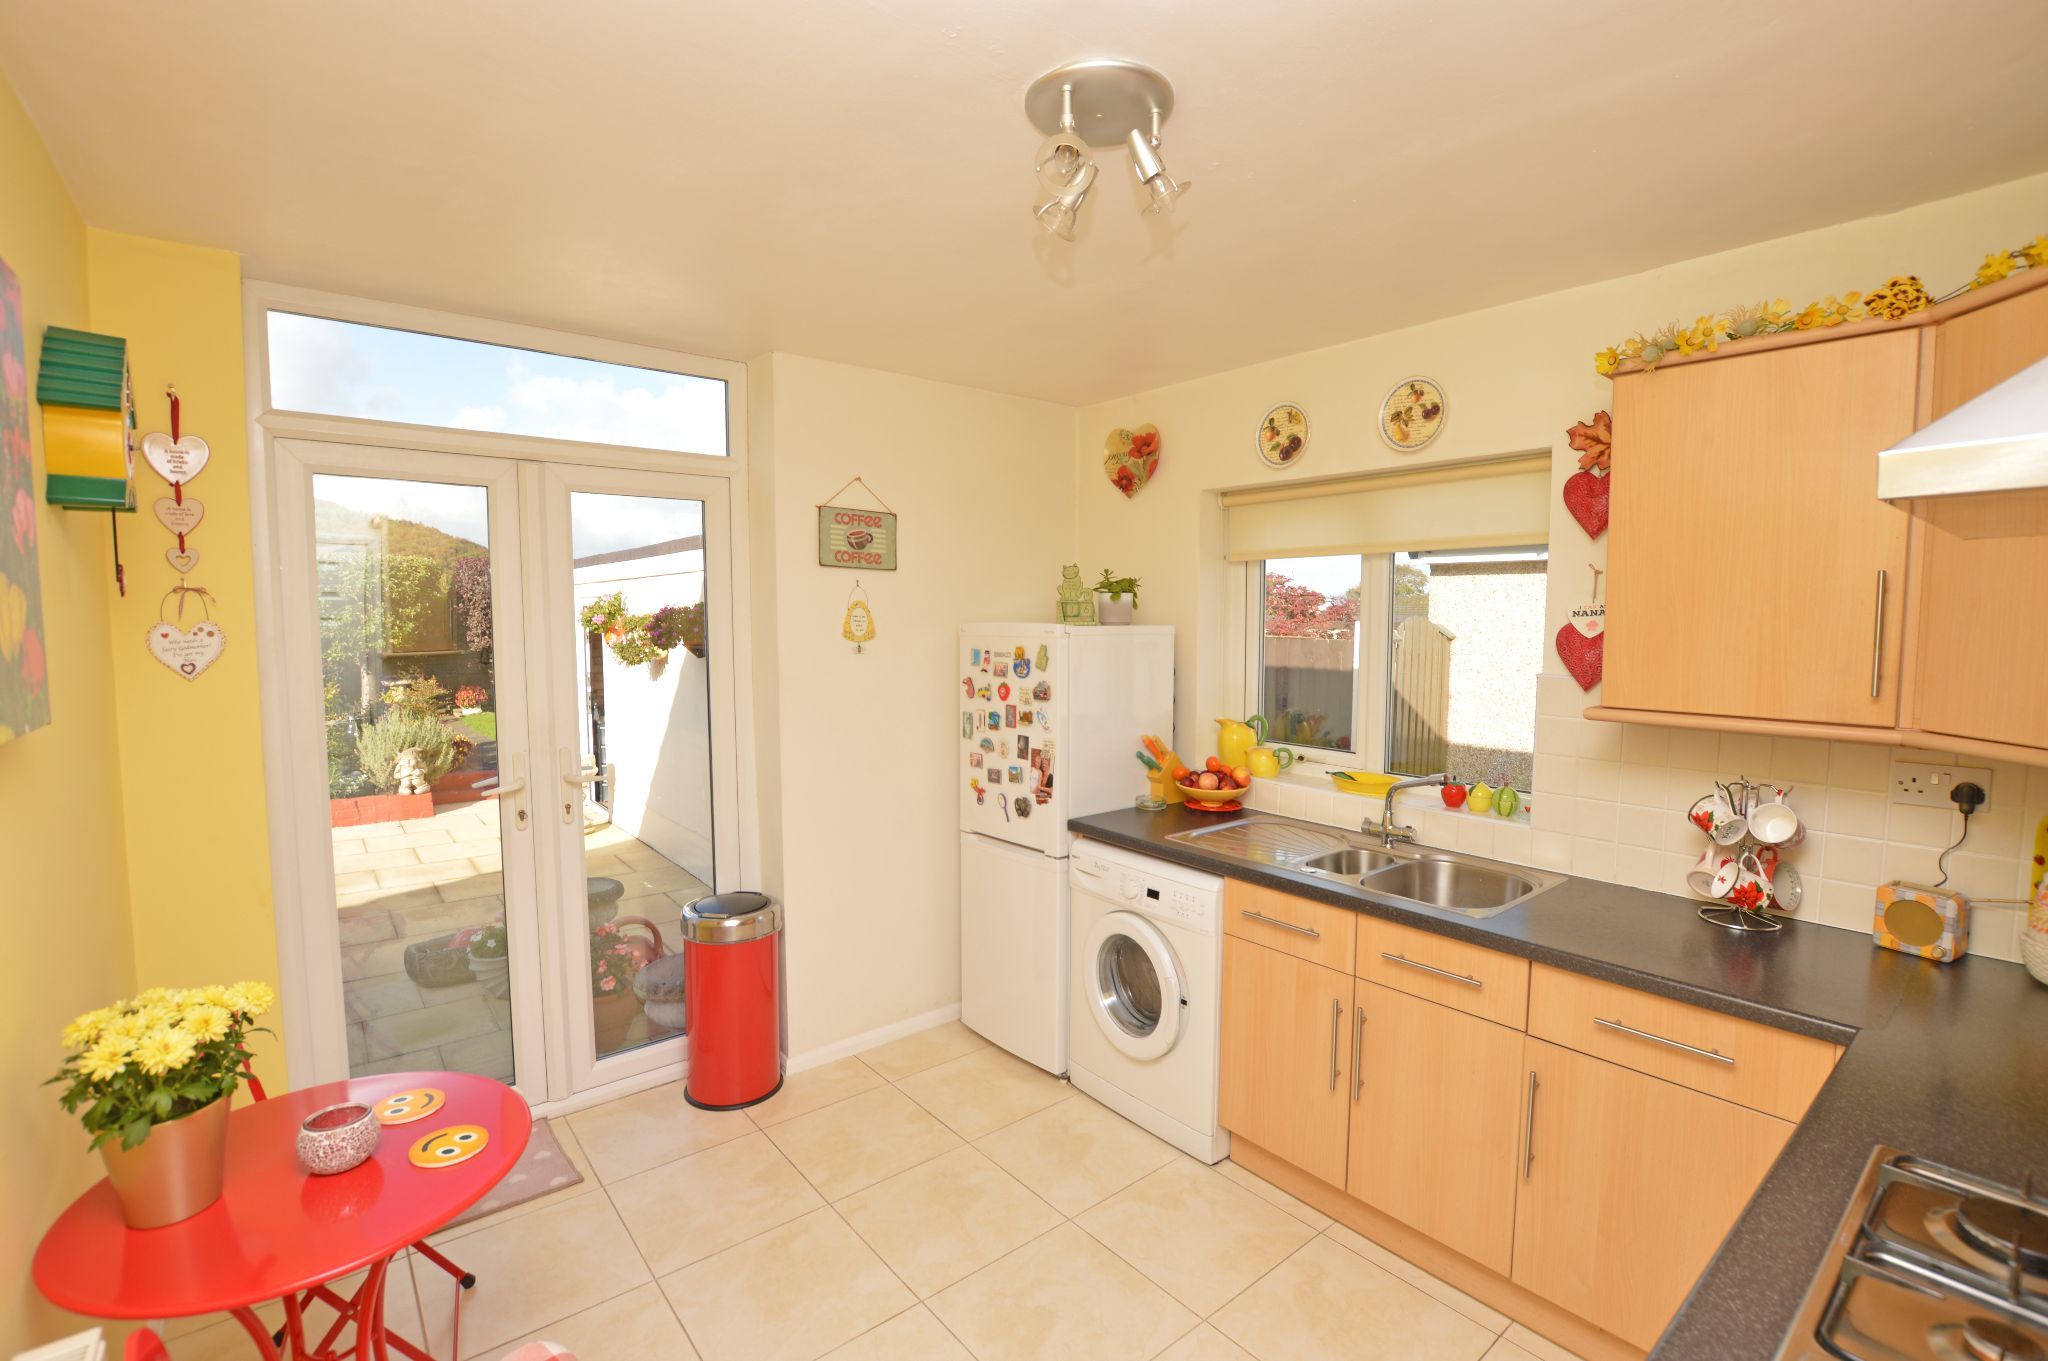 2 bedroom detached bungalow For Sale in Abergele - Kitchen